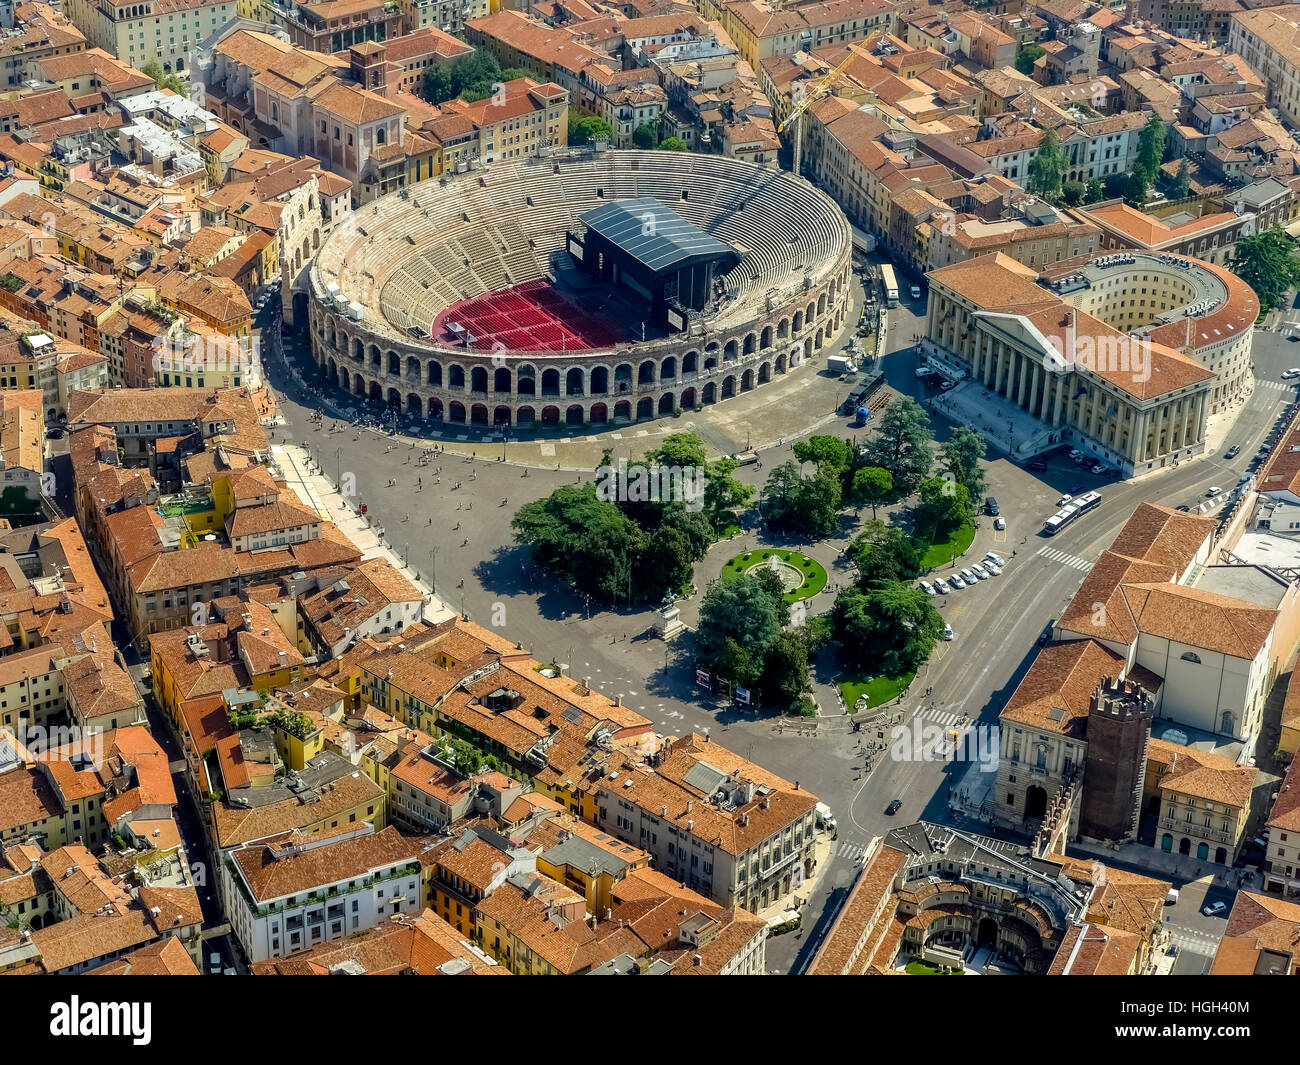 City centre with Arena di Verona, Province of Verona, Veneto, Italy - Stock Image